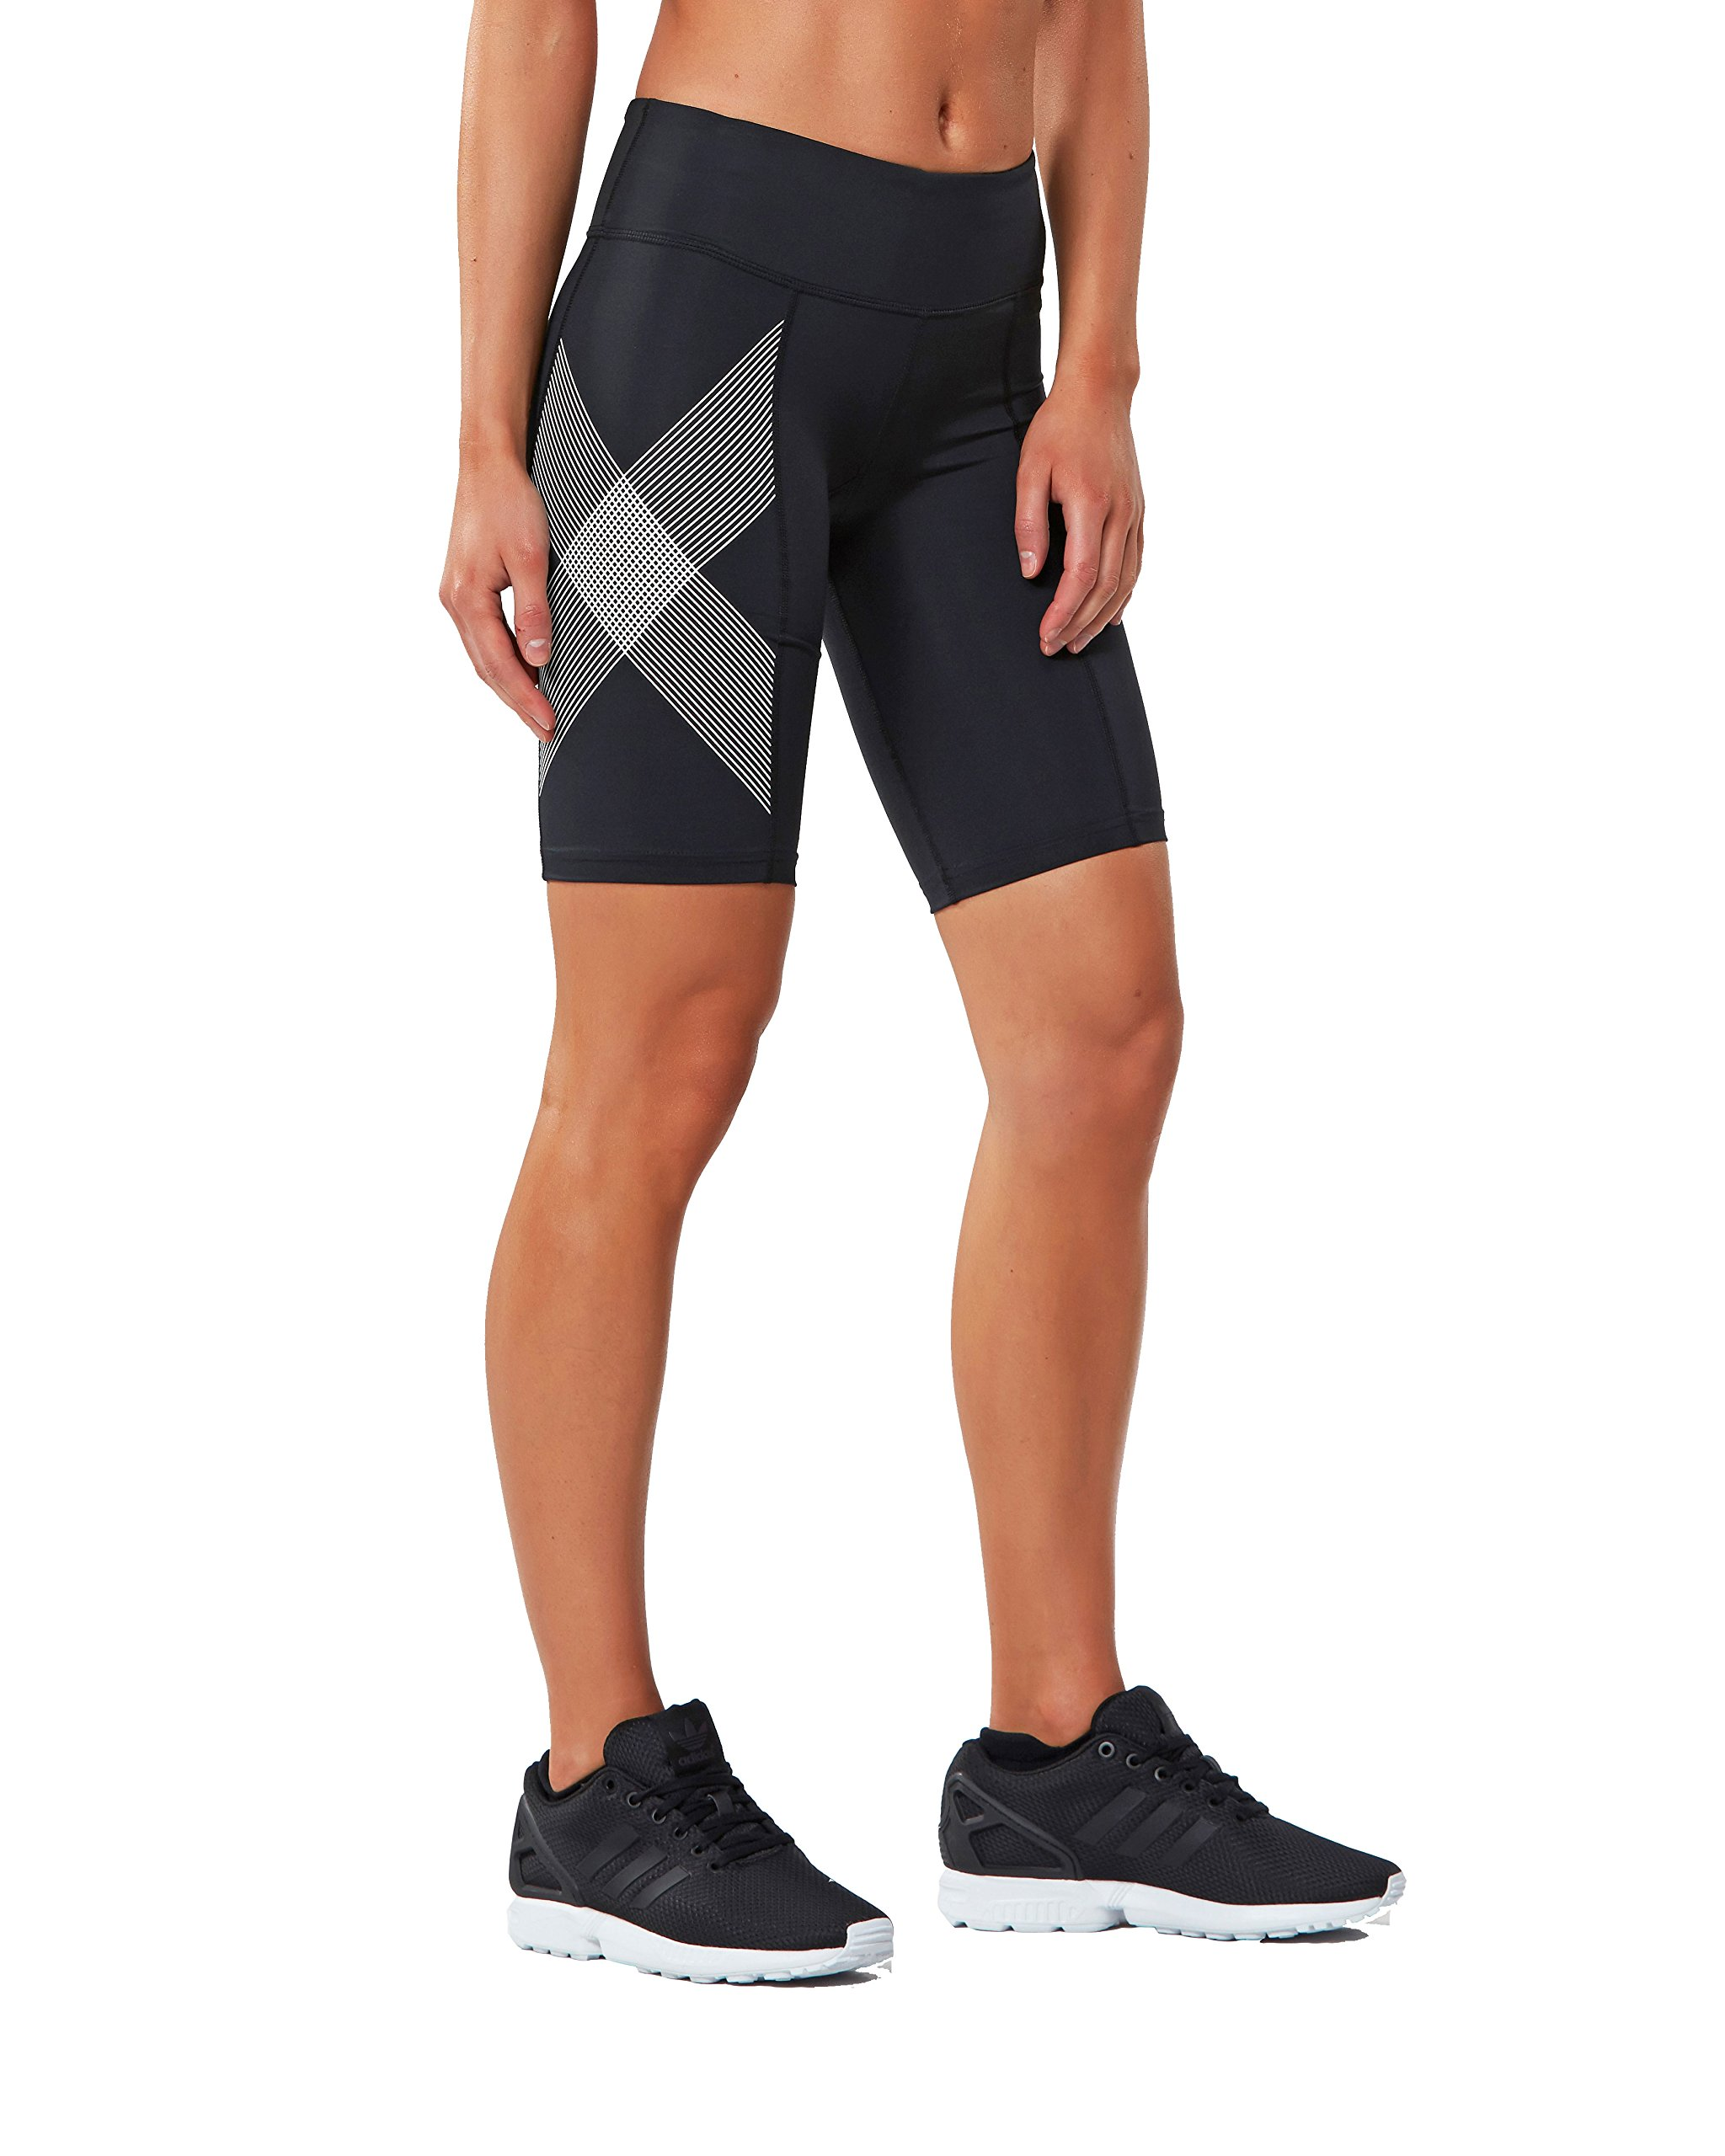 2XU Women's Mid-Rise Compression Shorts, Black/Striped White, X-Small by 2XU (Image #1)